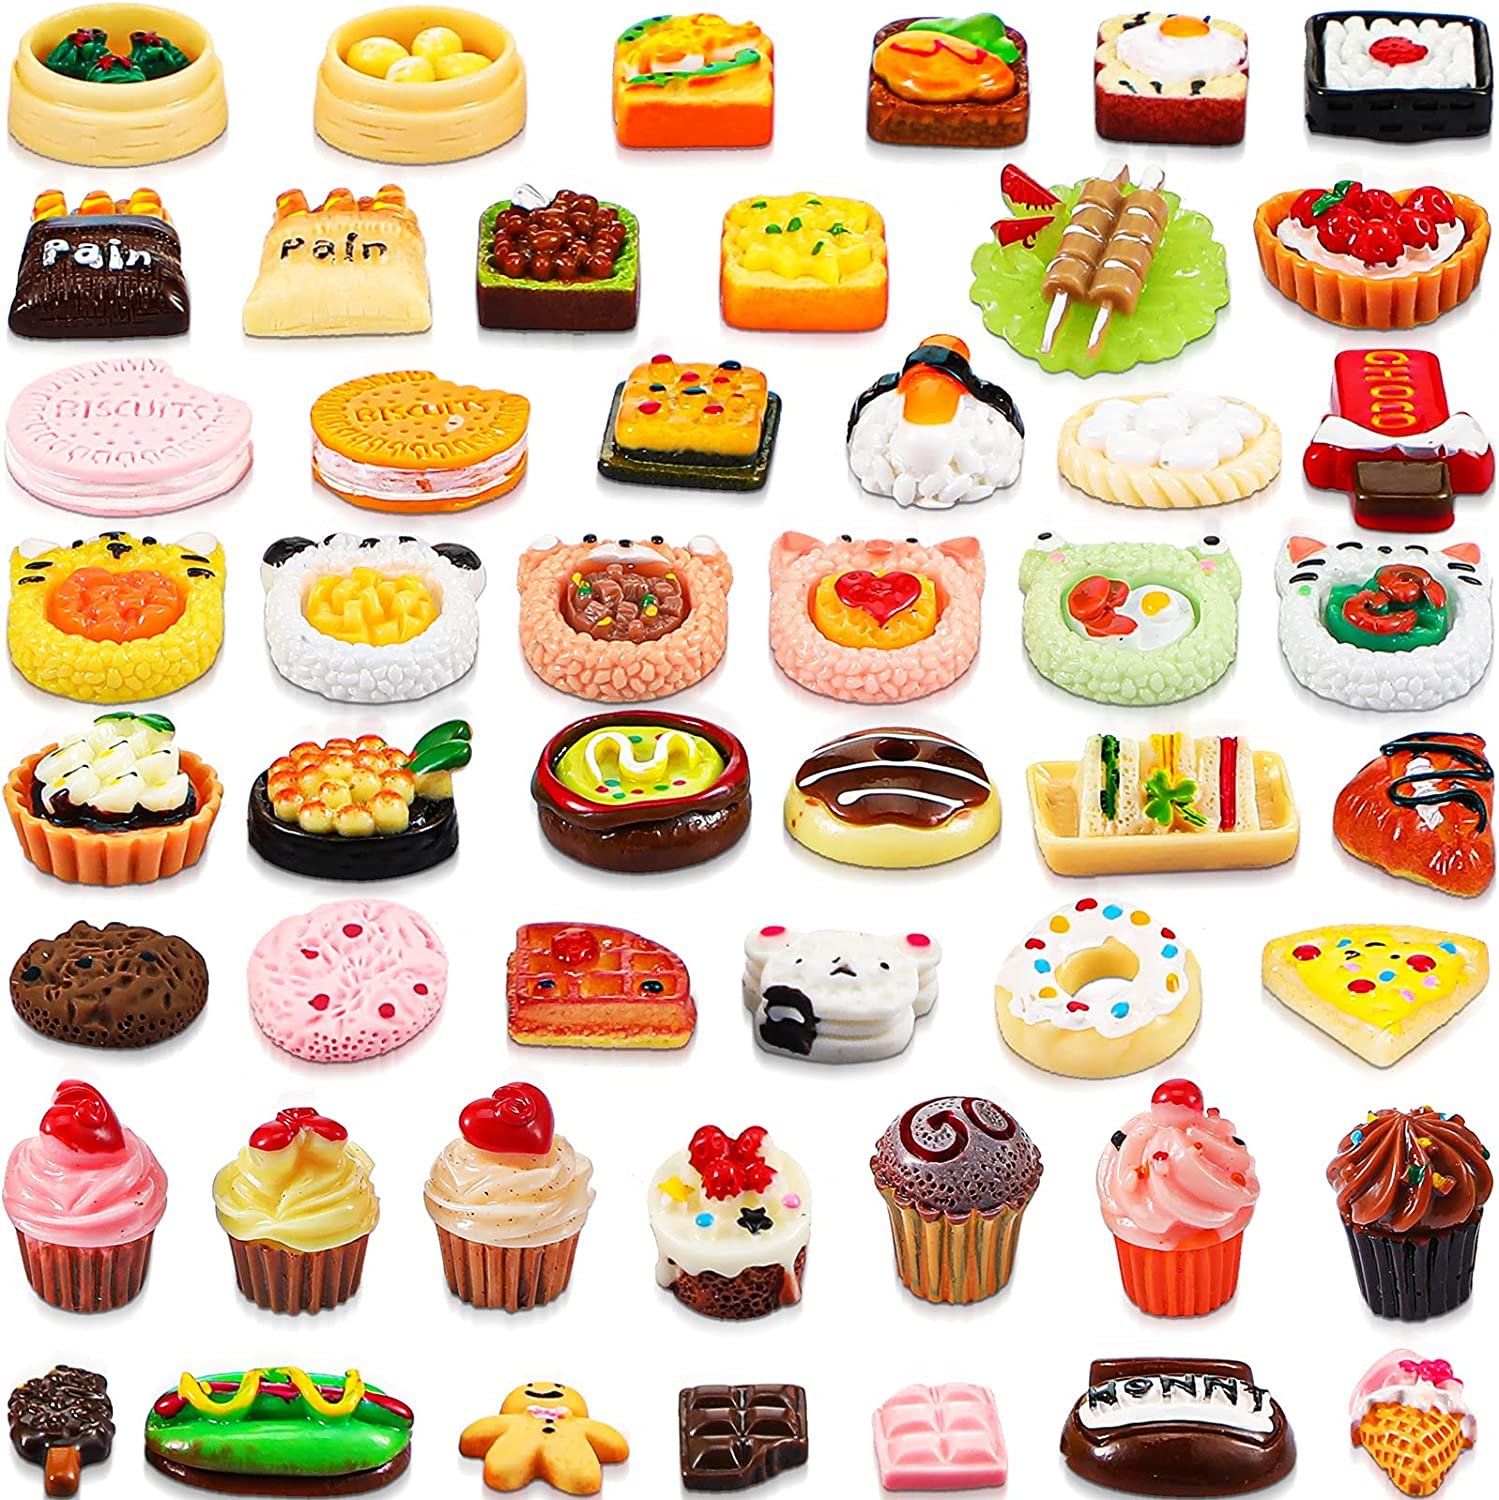 50 Pieces Miniature Food Drinks Toys Mixed Resin Foods for Doll Kitchen Pretend Play Mini Food Set for Adults Teenagers Boys Girls Dollhouse Cooking Game